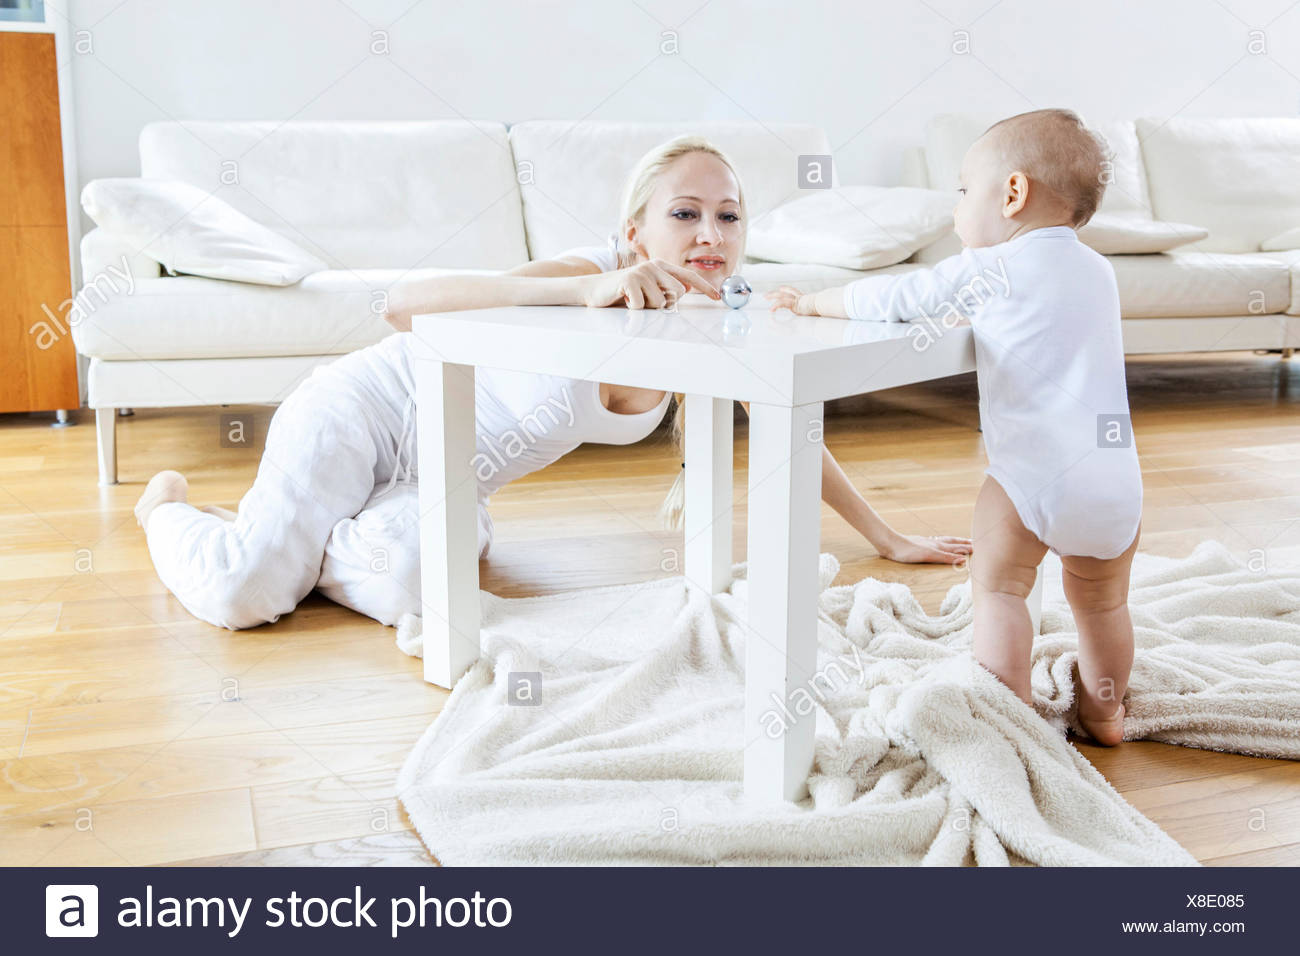 Mother and baby playing in living room - Stock Image